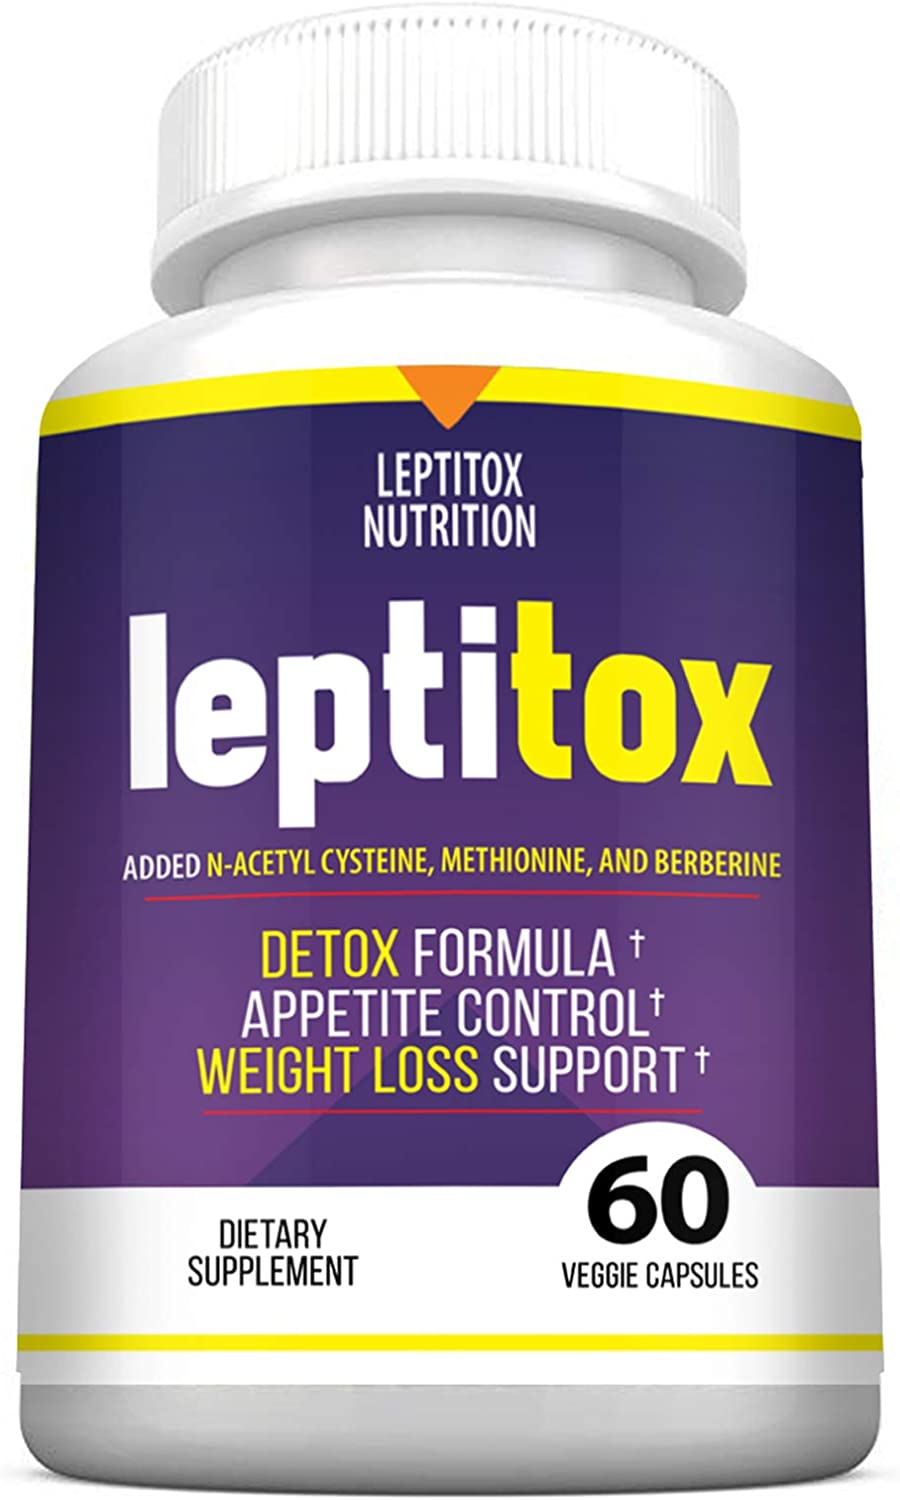 Leptitox Outlet Store Coupons June